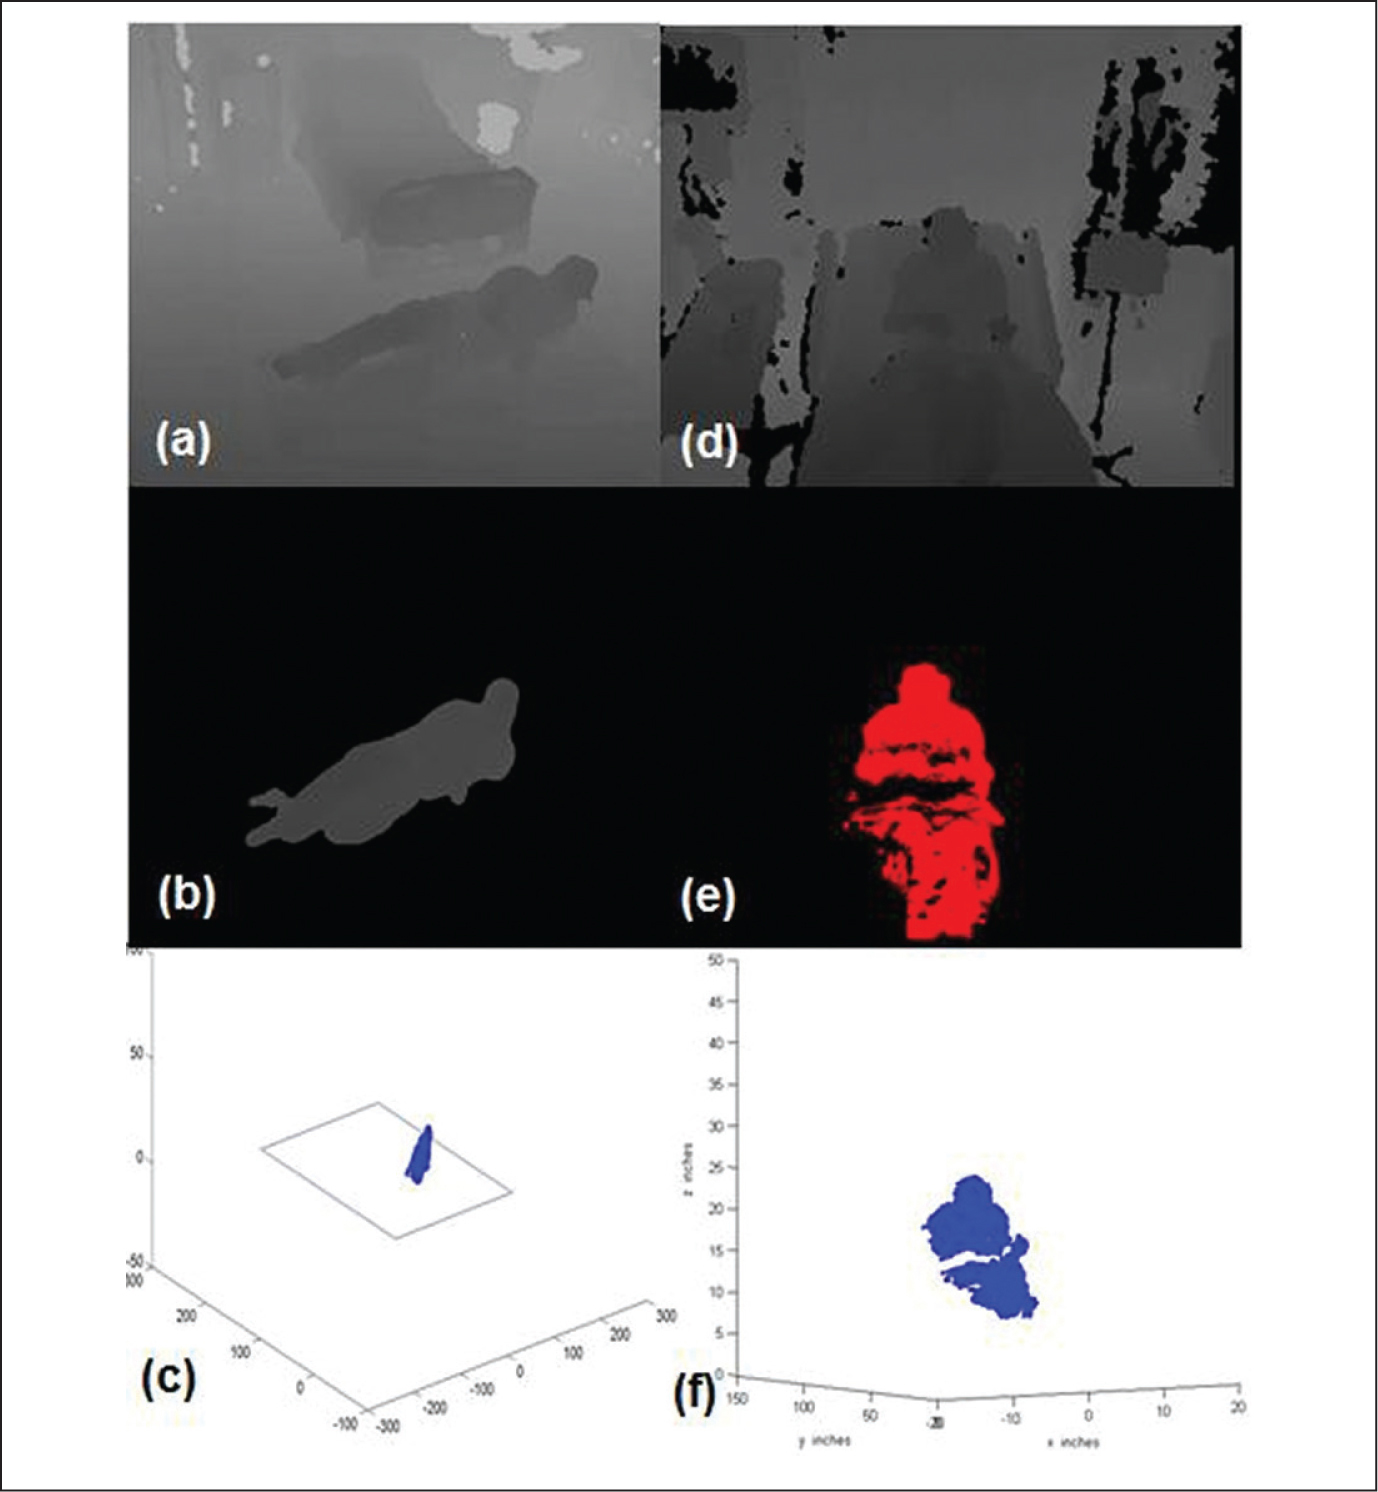 Depth (a, d), extracted foreground (b, e), and three-dimensional point clouds (c, f) of a person falling (a, b, c) and a hospitalized patient on the bed (d, e, f).